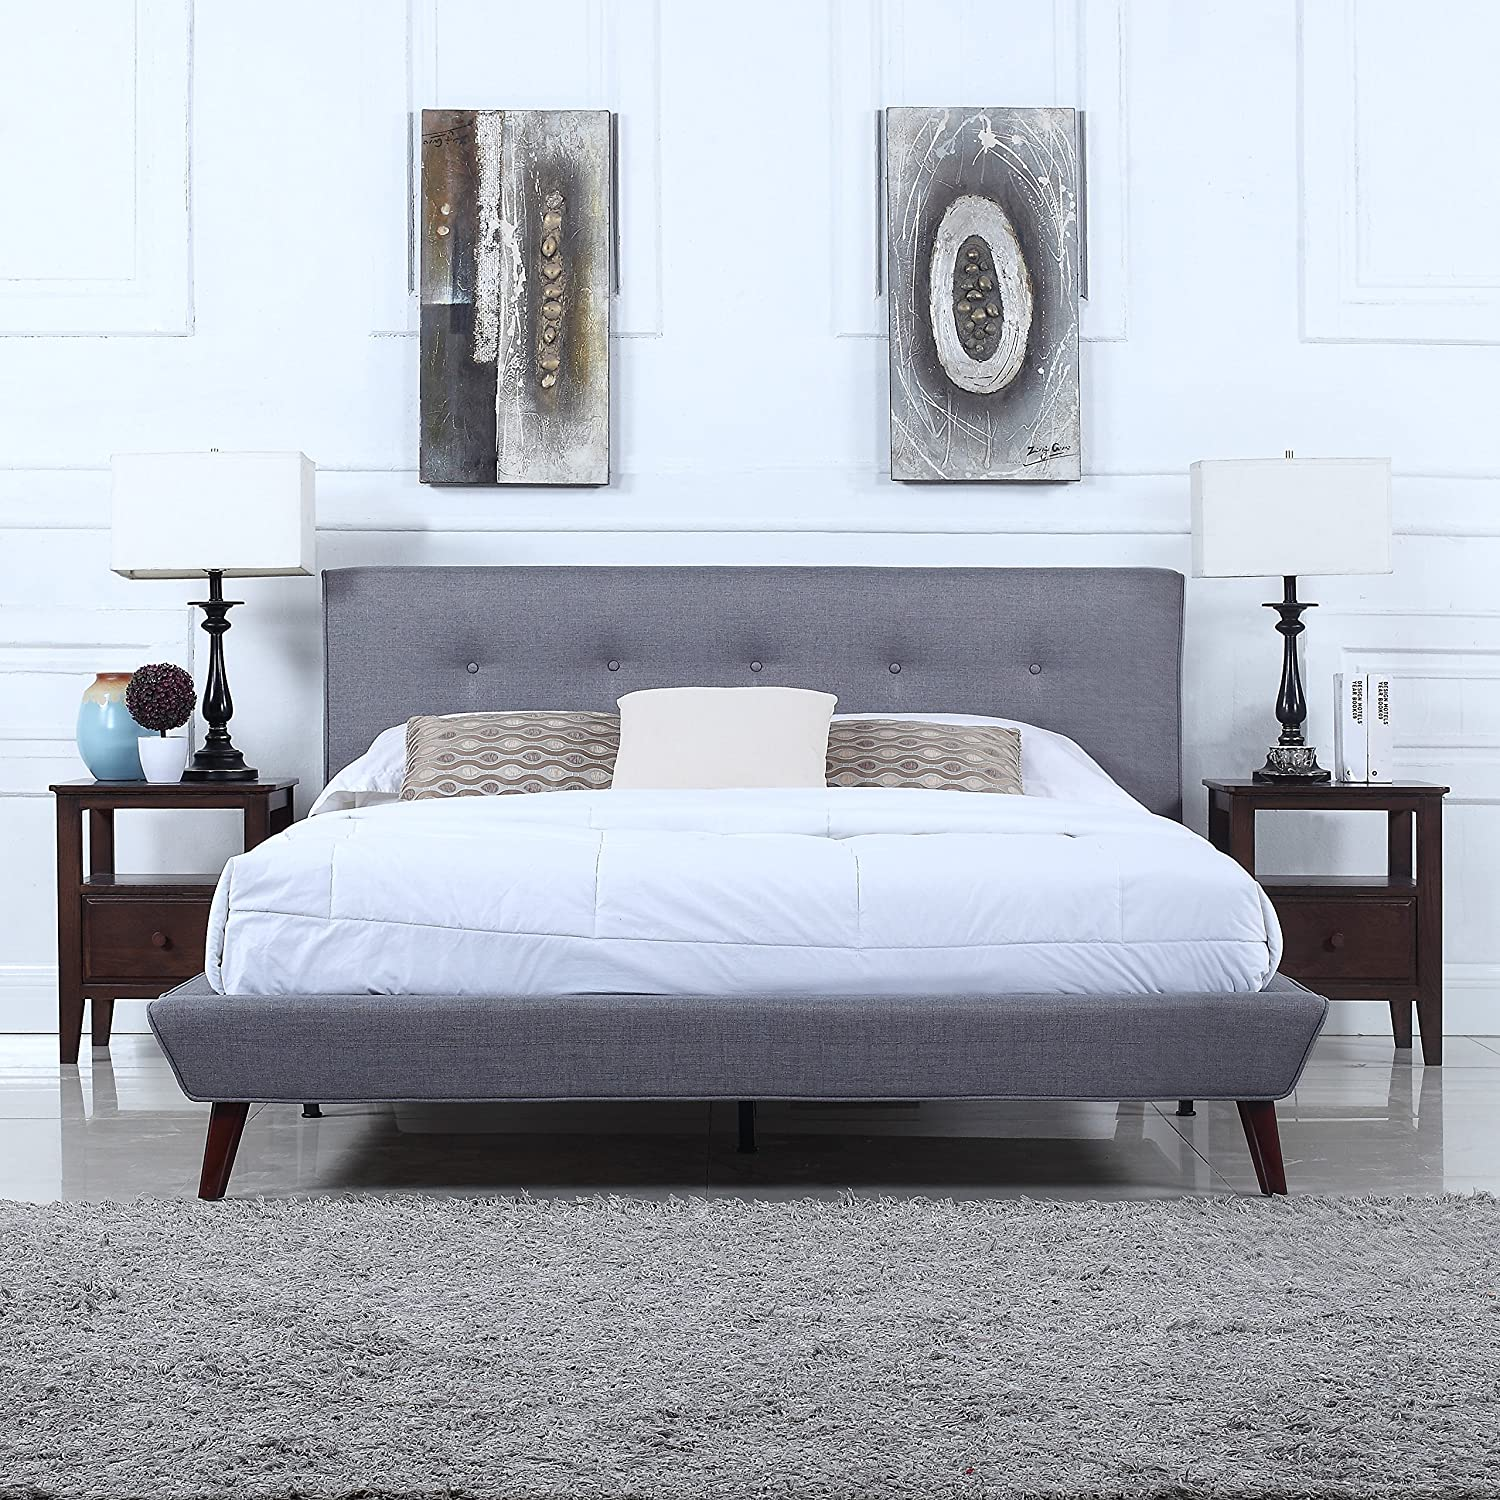 bed headboard of en picture frame bedroom swan bienal